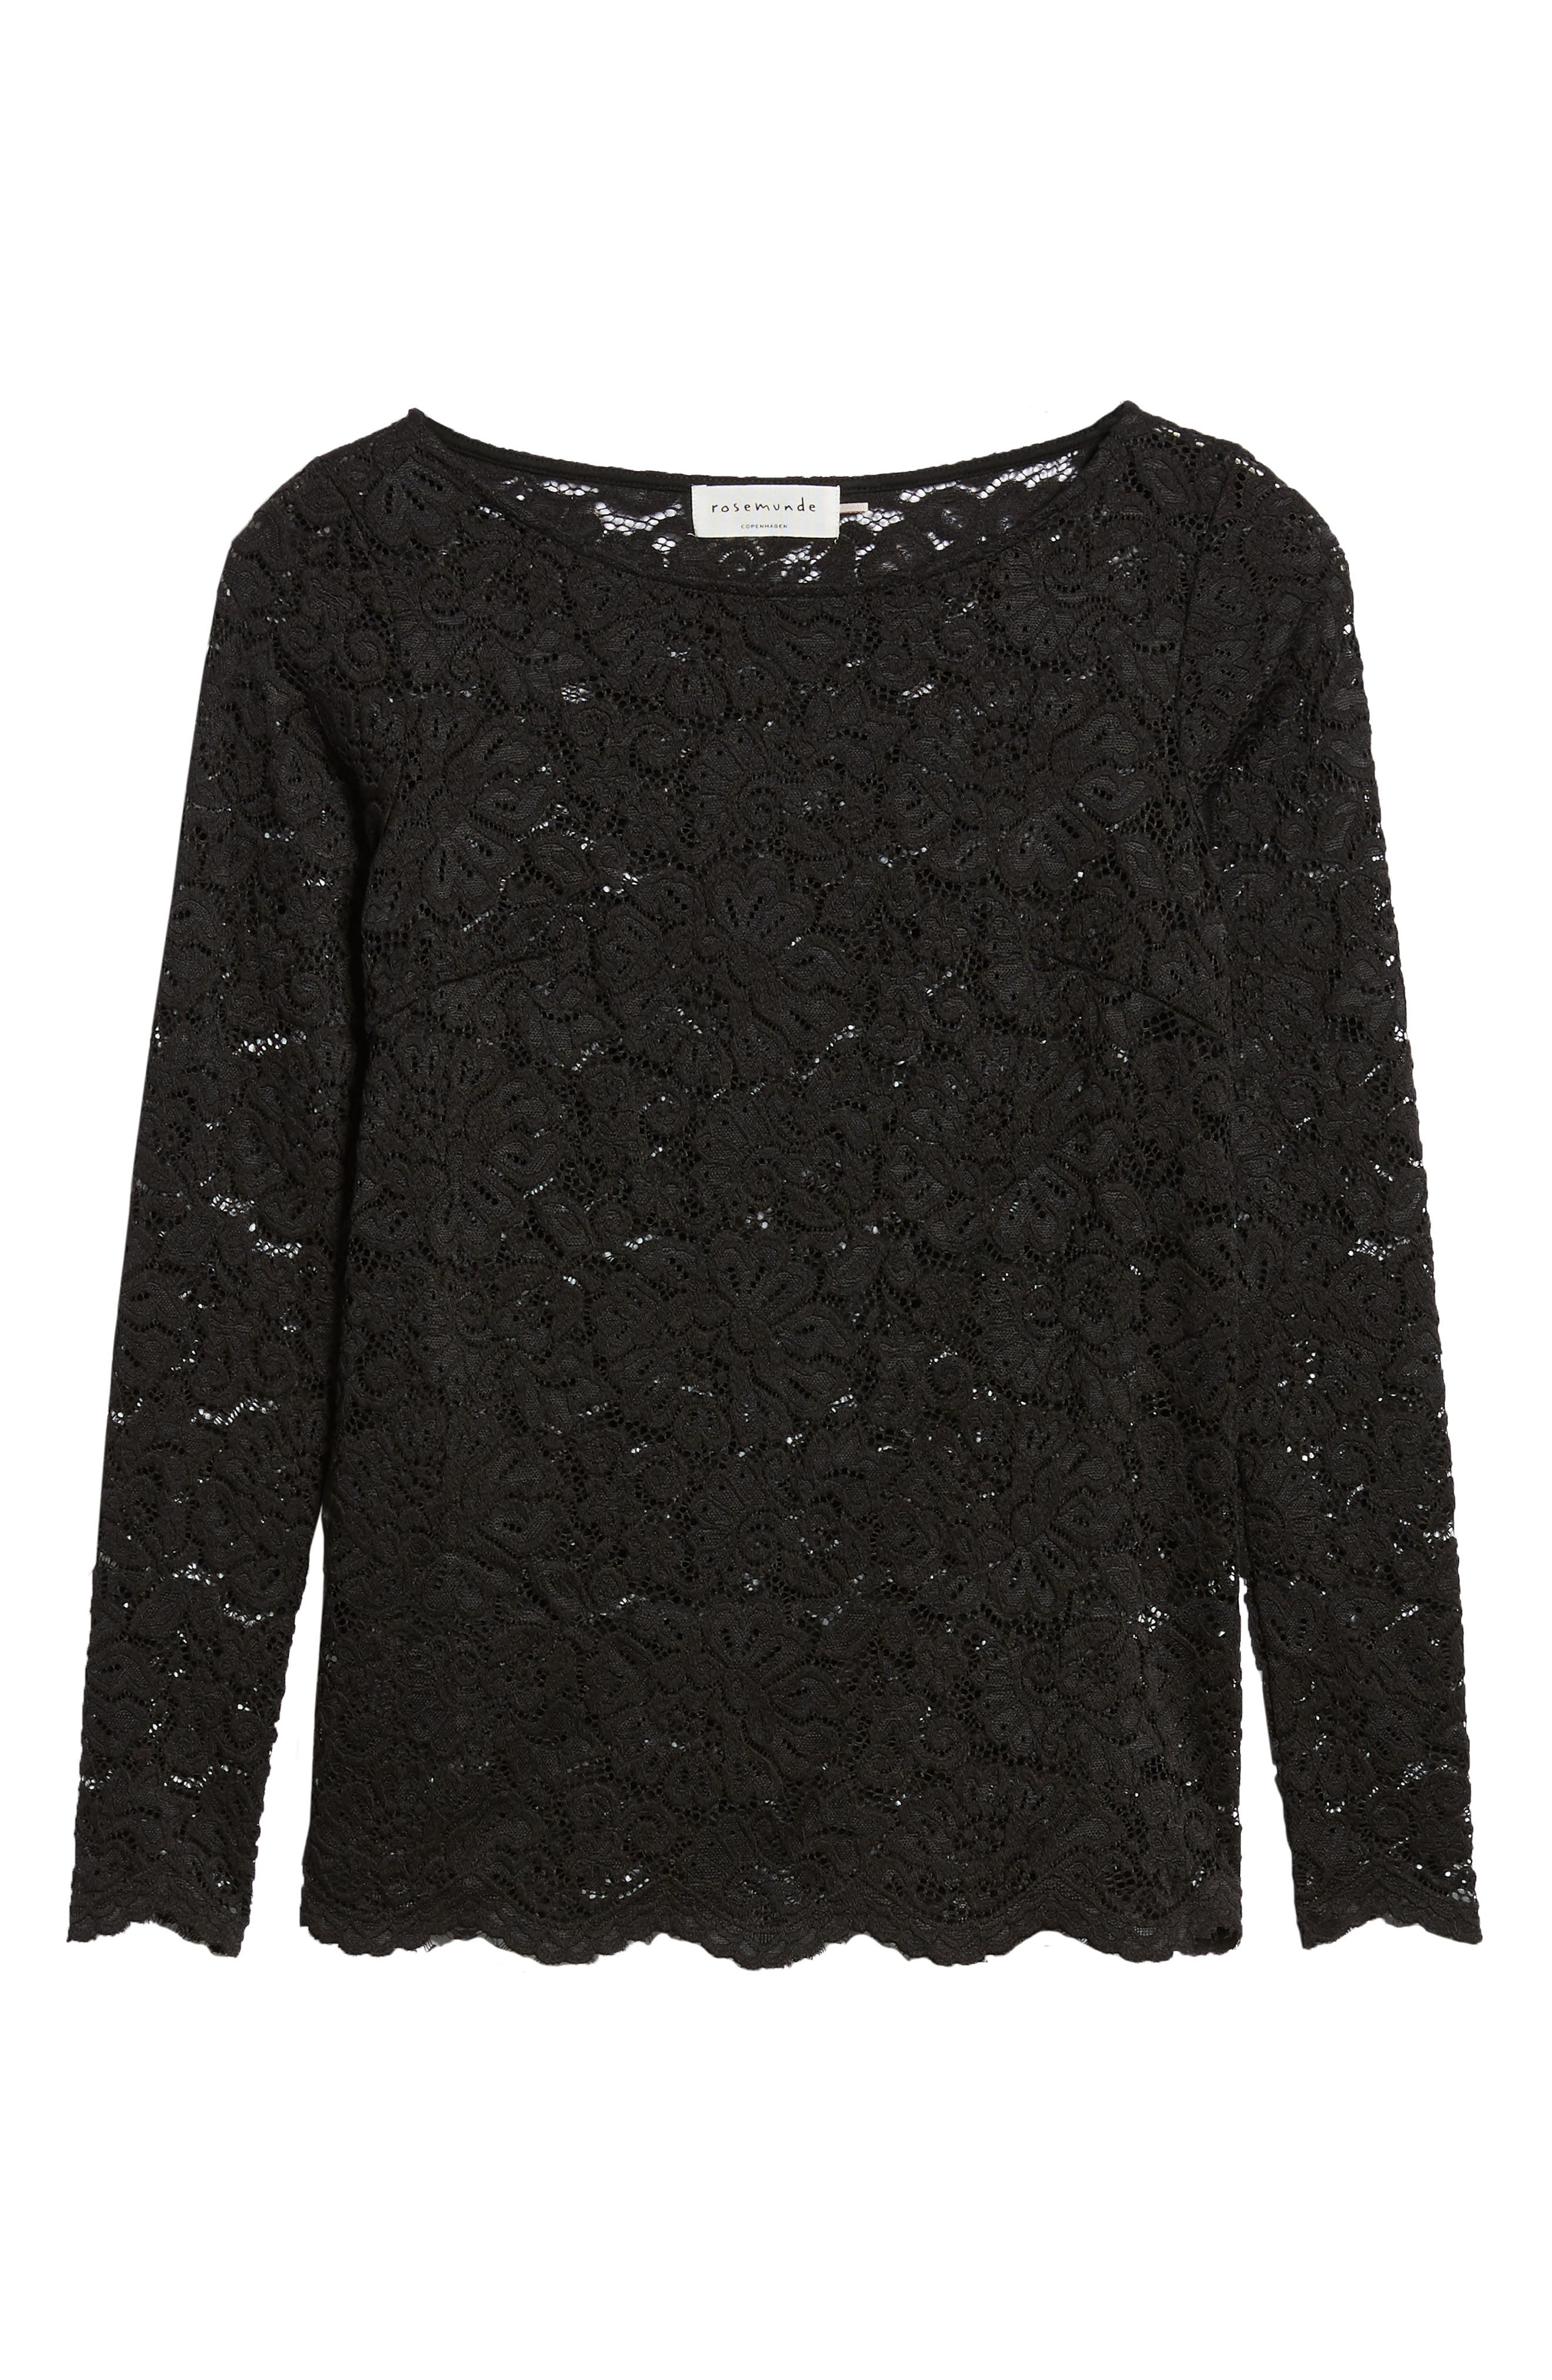 ROSEMUNDE, Filipa Lace Blouse, Alternate thumbnail 6, color, BLACK